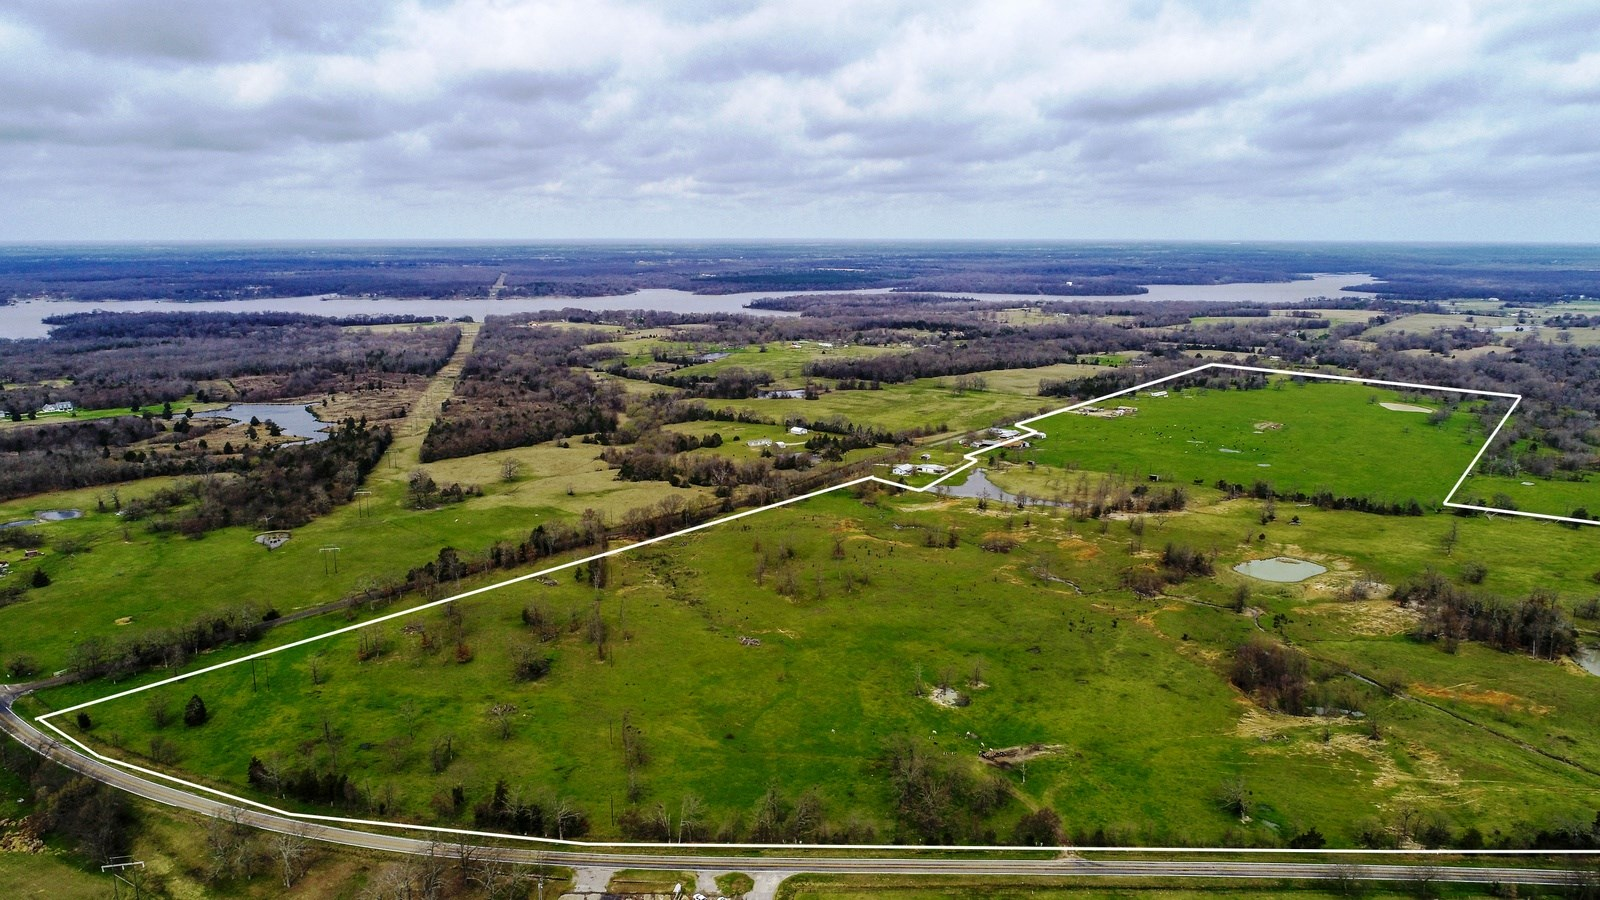 ALMOST 300 EAST TEXAS ACRES FOR SALE IN YANTIS, TEXAS